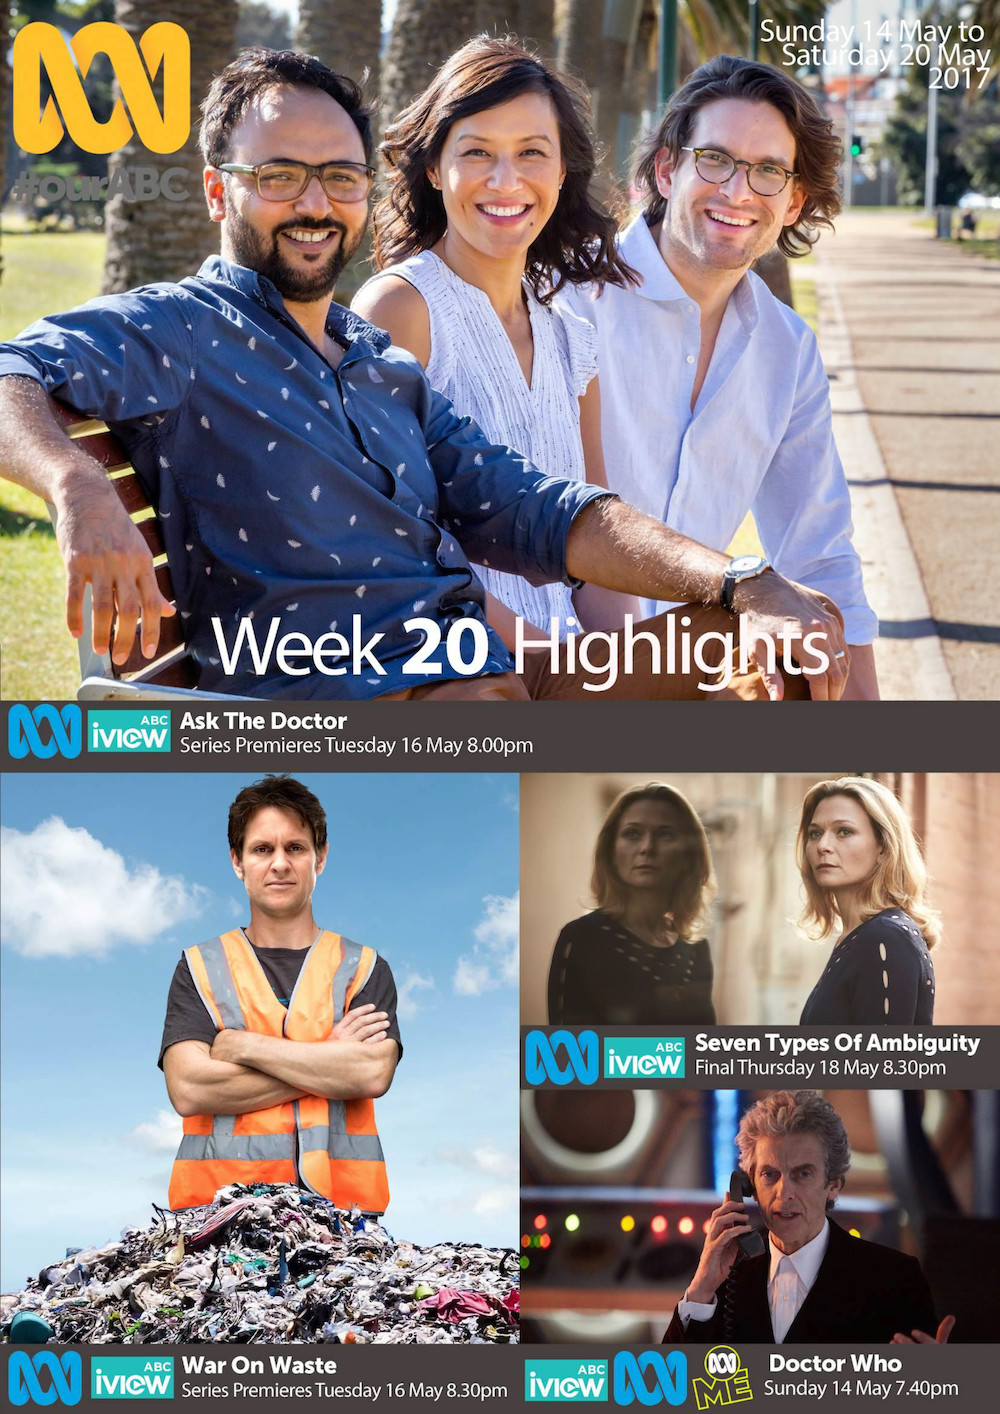 ABC Program Highlights - Week 20